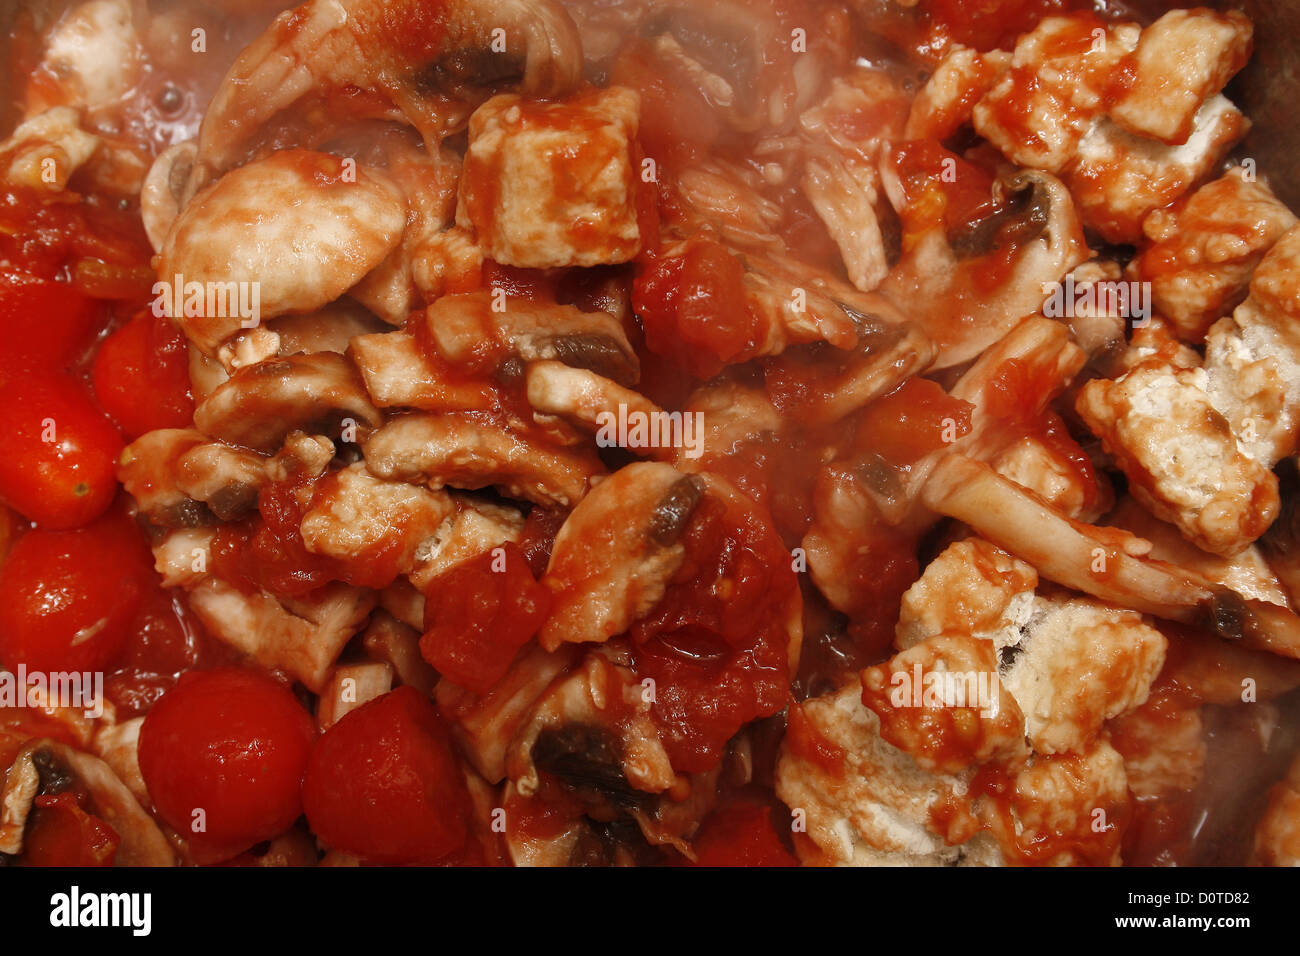 chopped tomatoes, mushrooms and quorn chicken pieces cooking in a pan - Stock Image